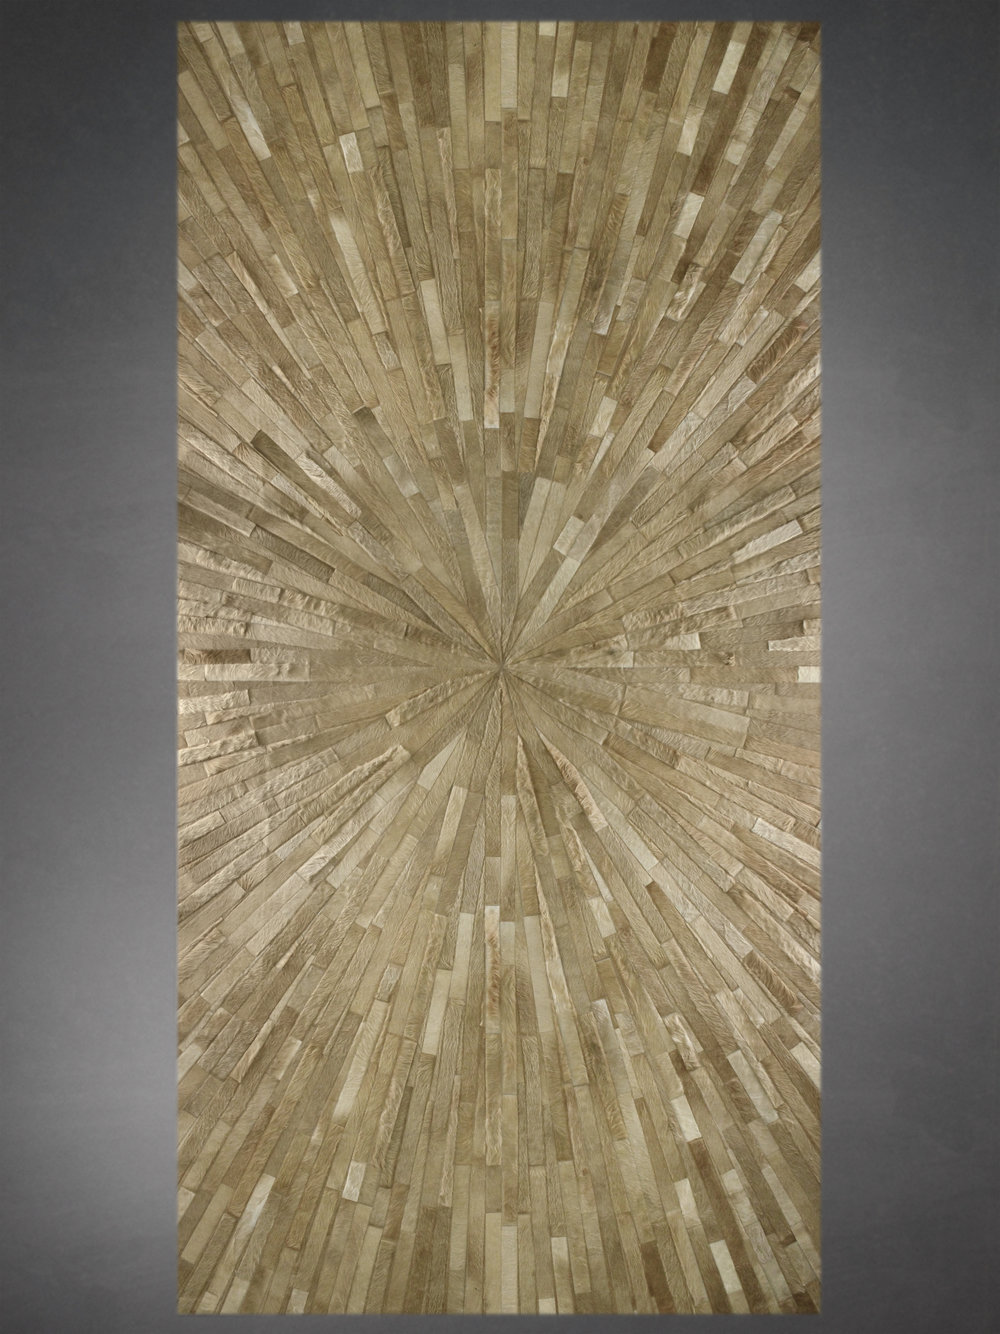 Contemporary designed fur rug in a starburst pattern in gold.